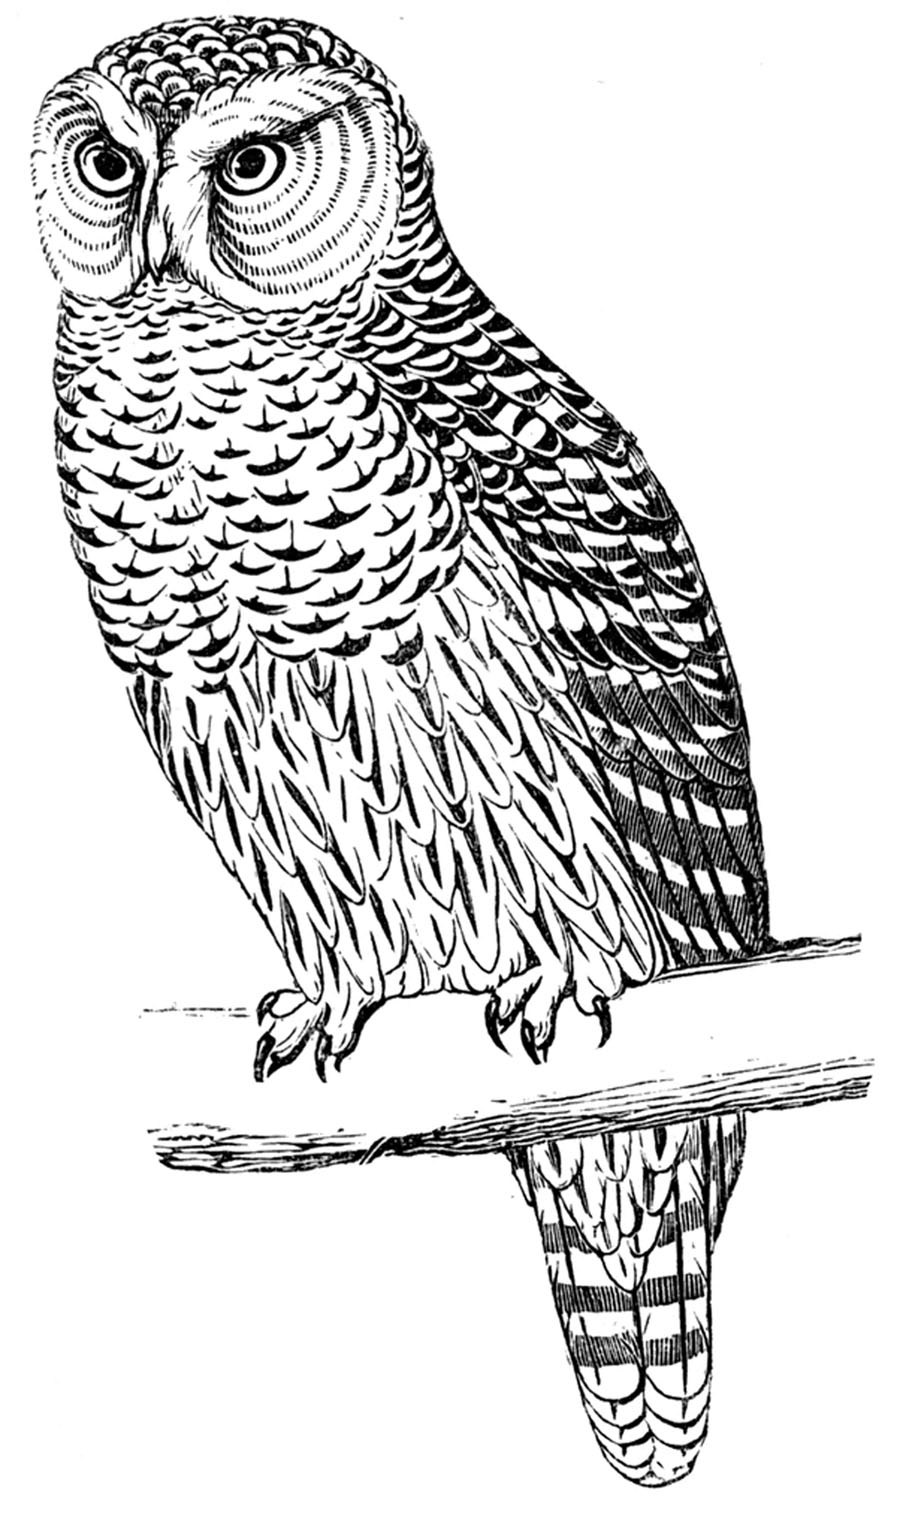 owl coloring pages free printable owl coloring pages to print only coloring pages coloring owl printable pages free